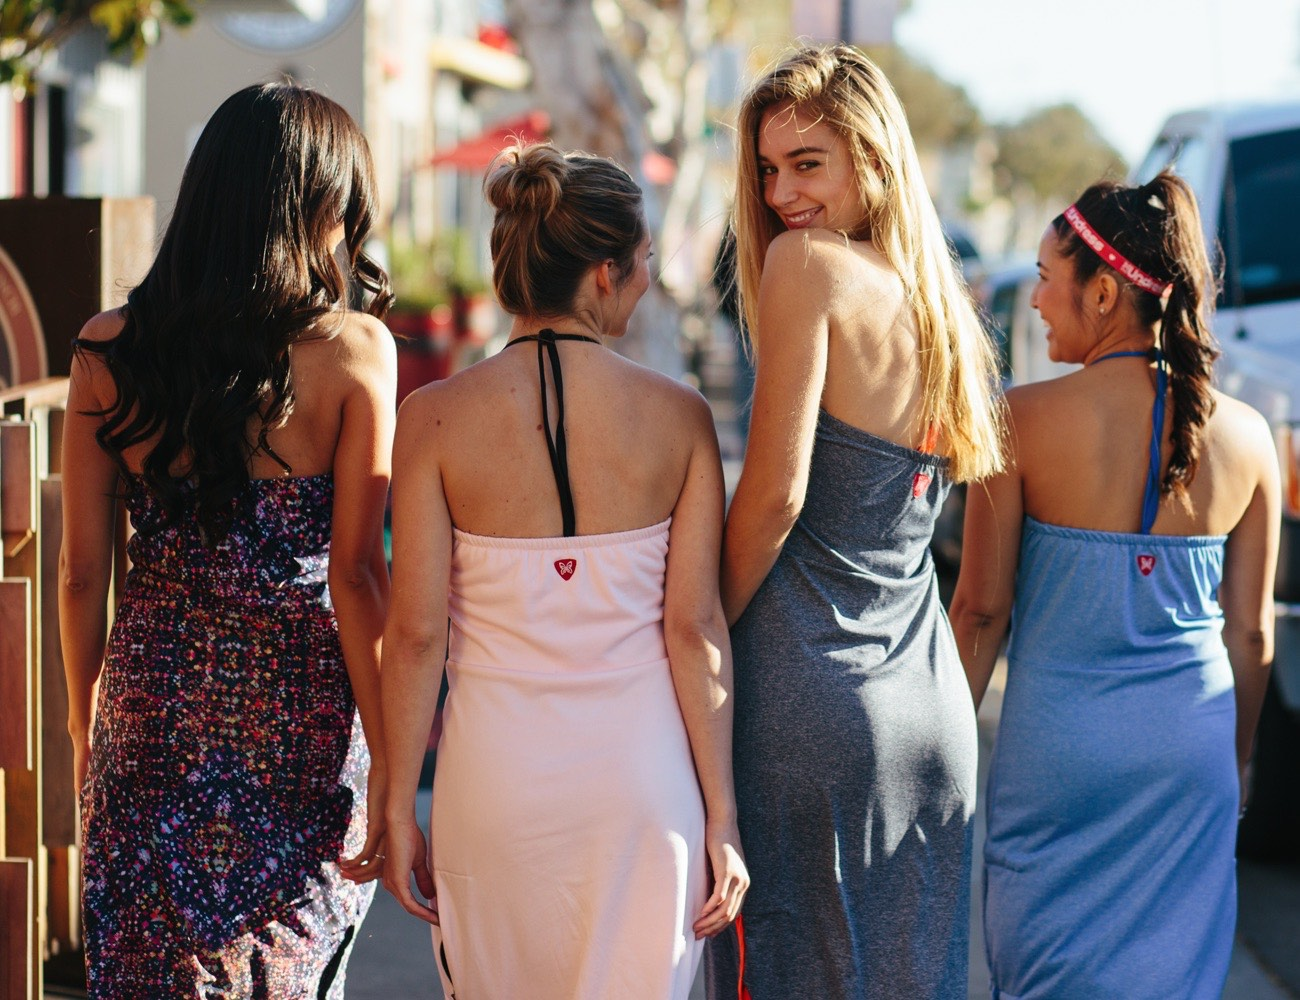 The Undress – Change Clothes in Public Without Getting Naked!